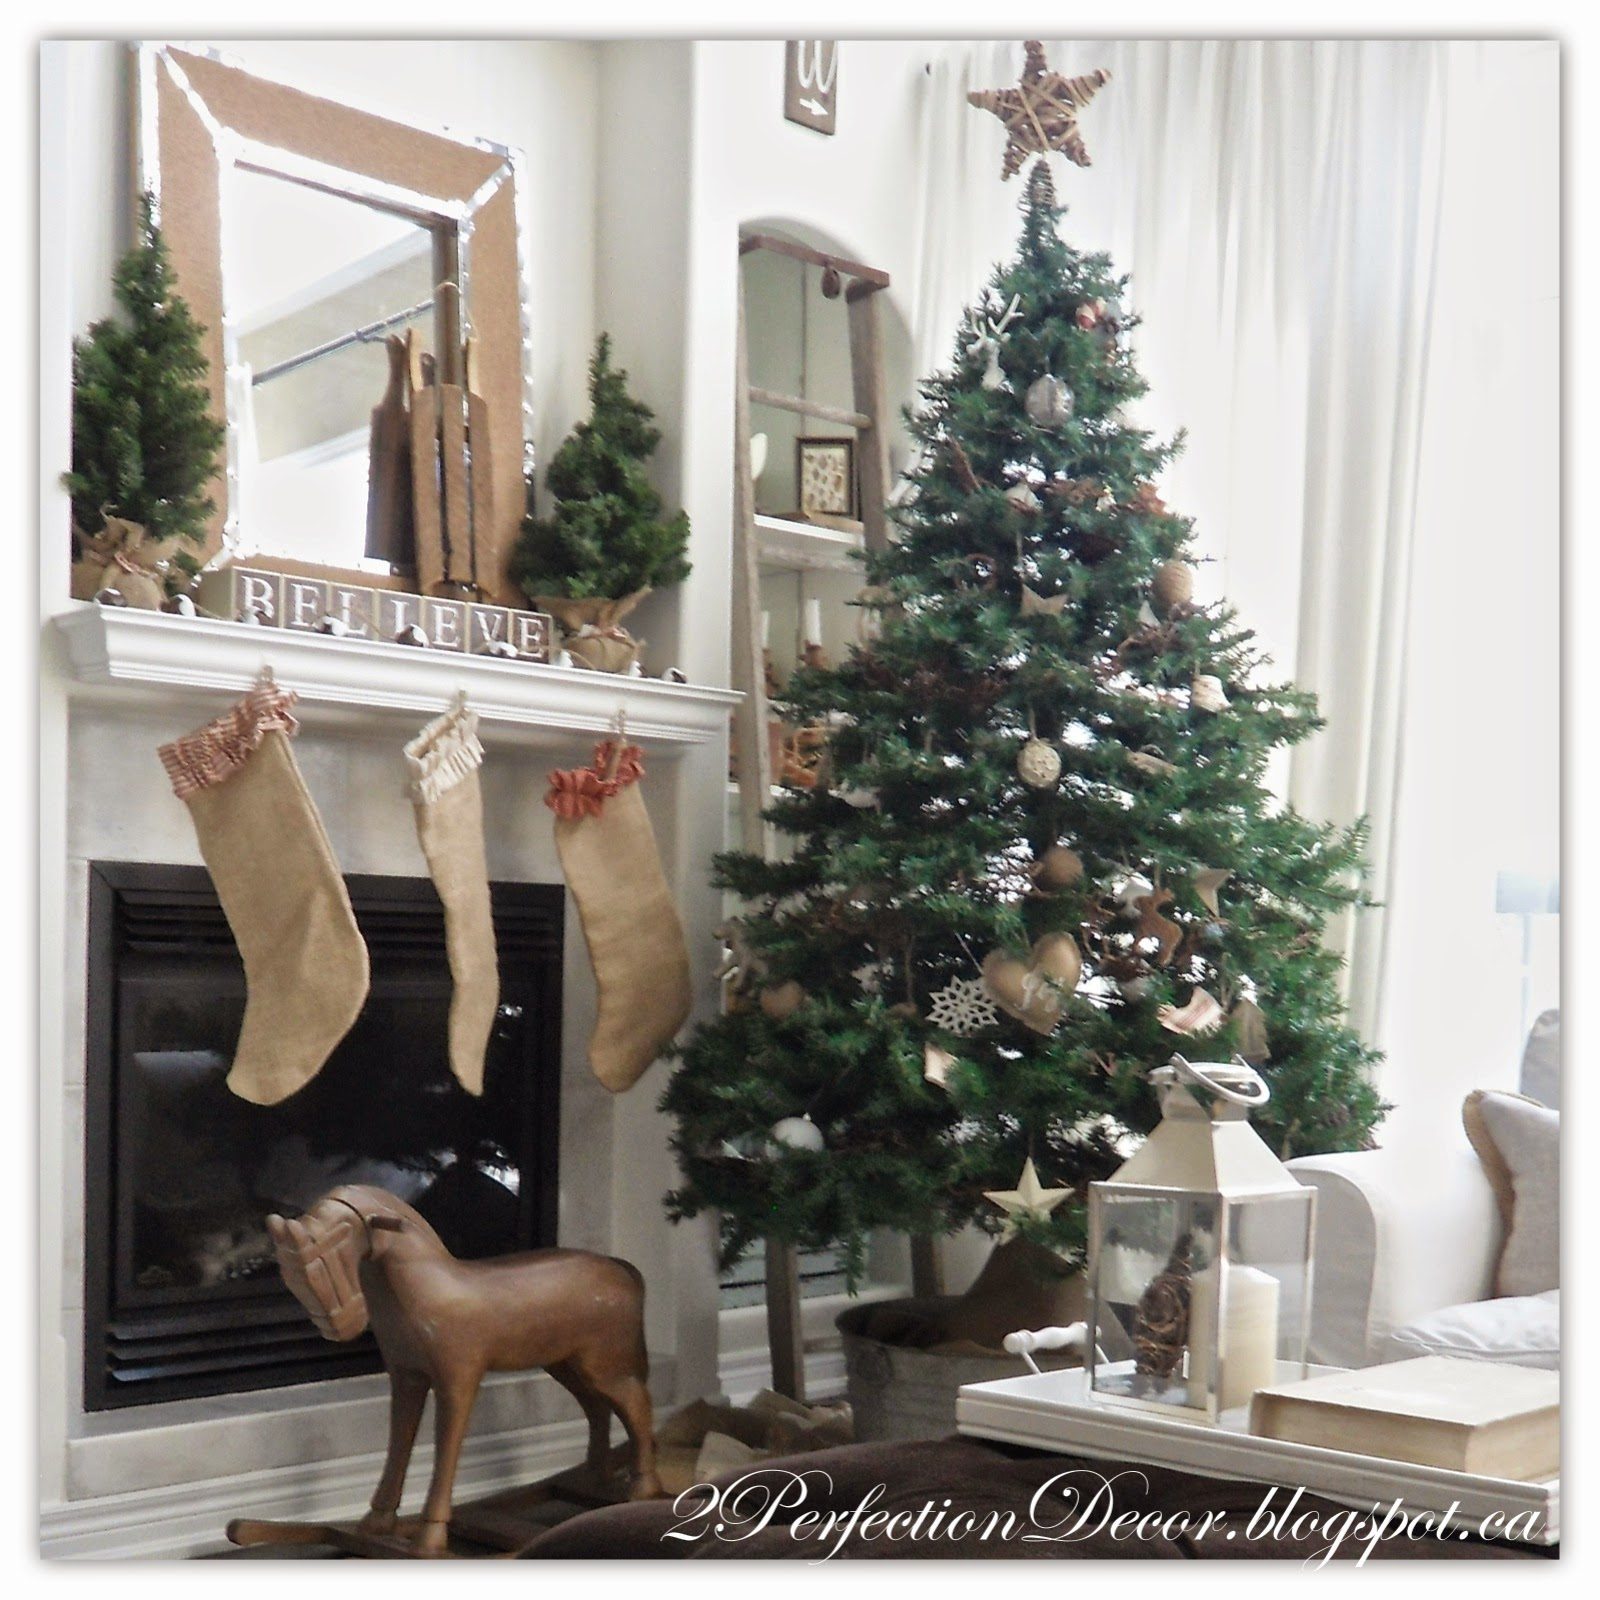 Country christmas decorations 2014 - Monday December 8 2014